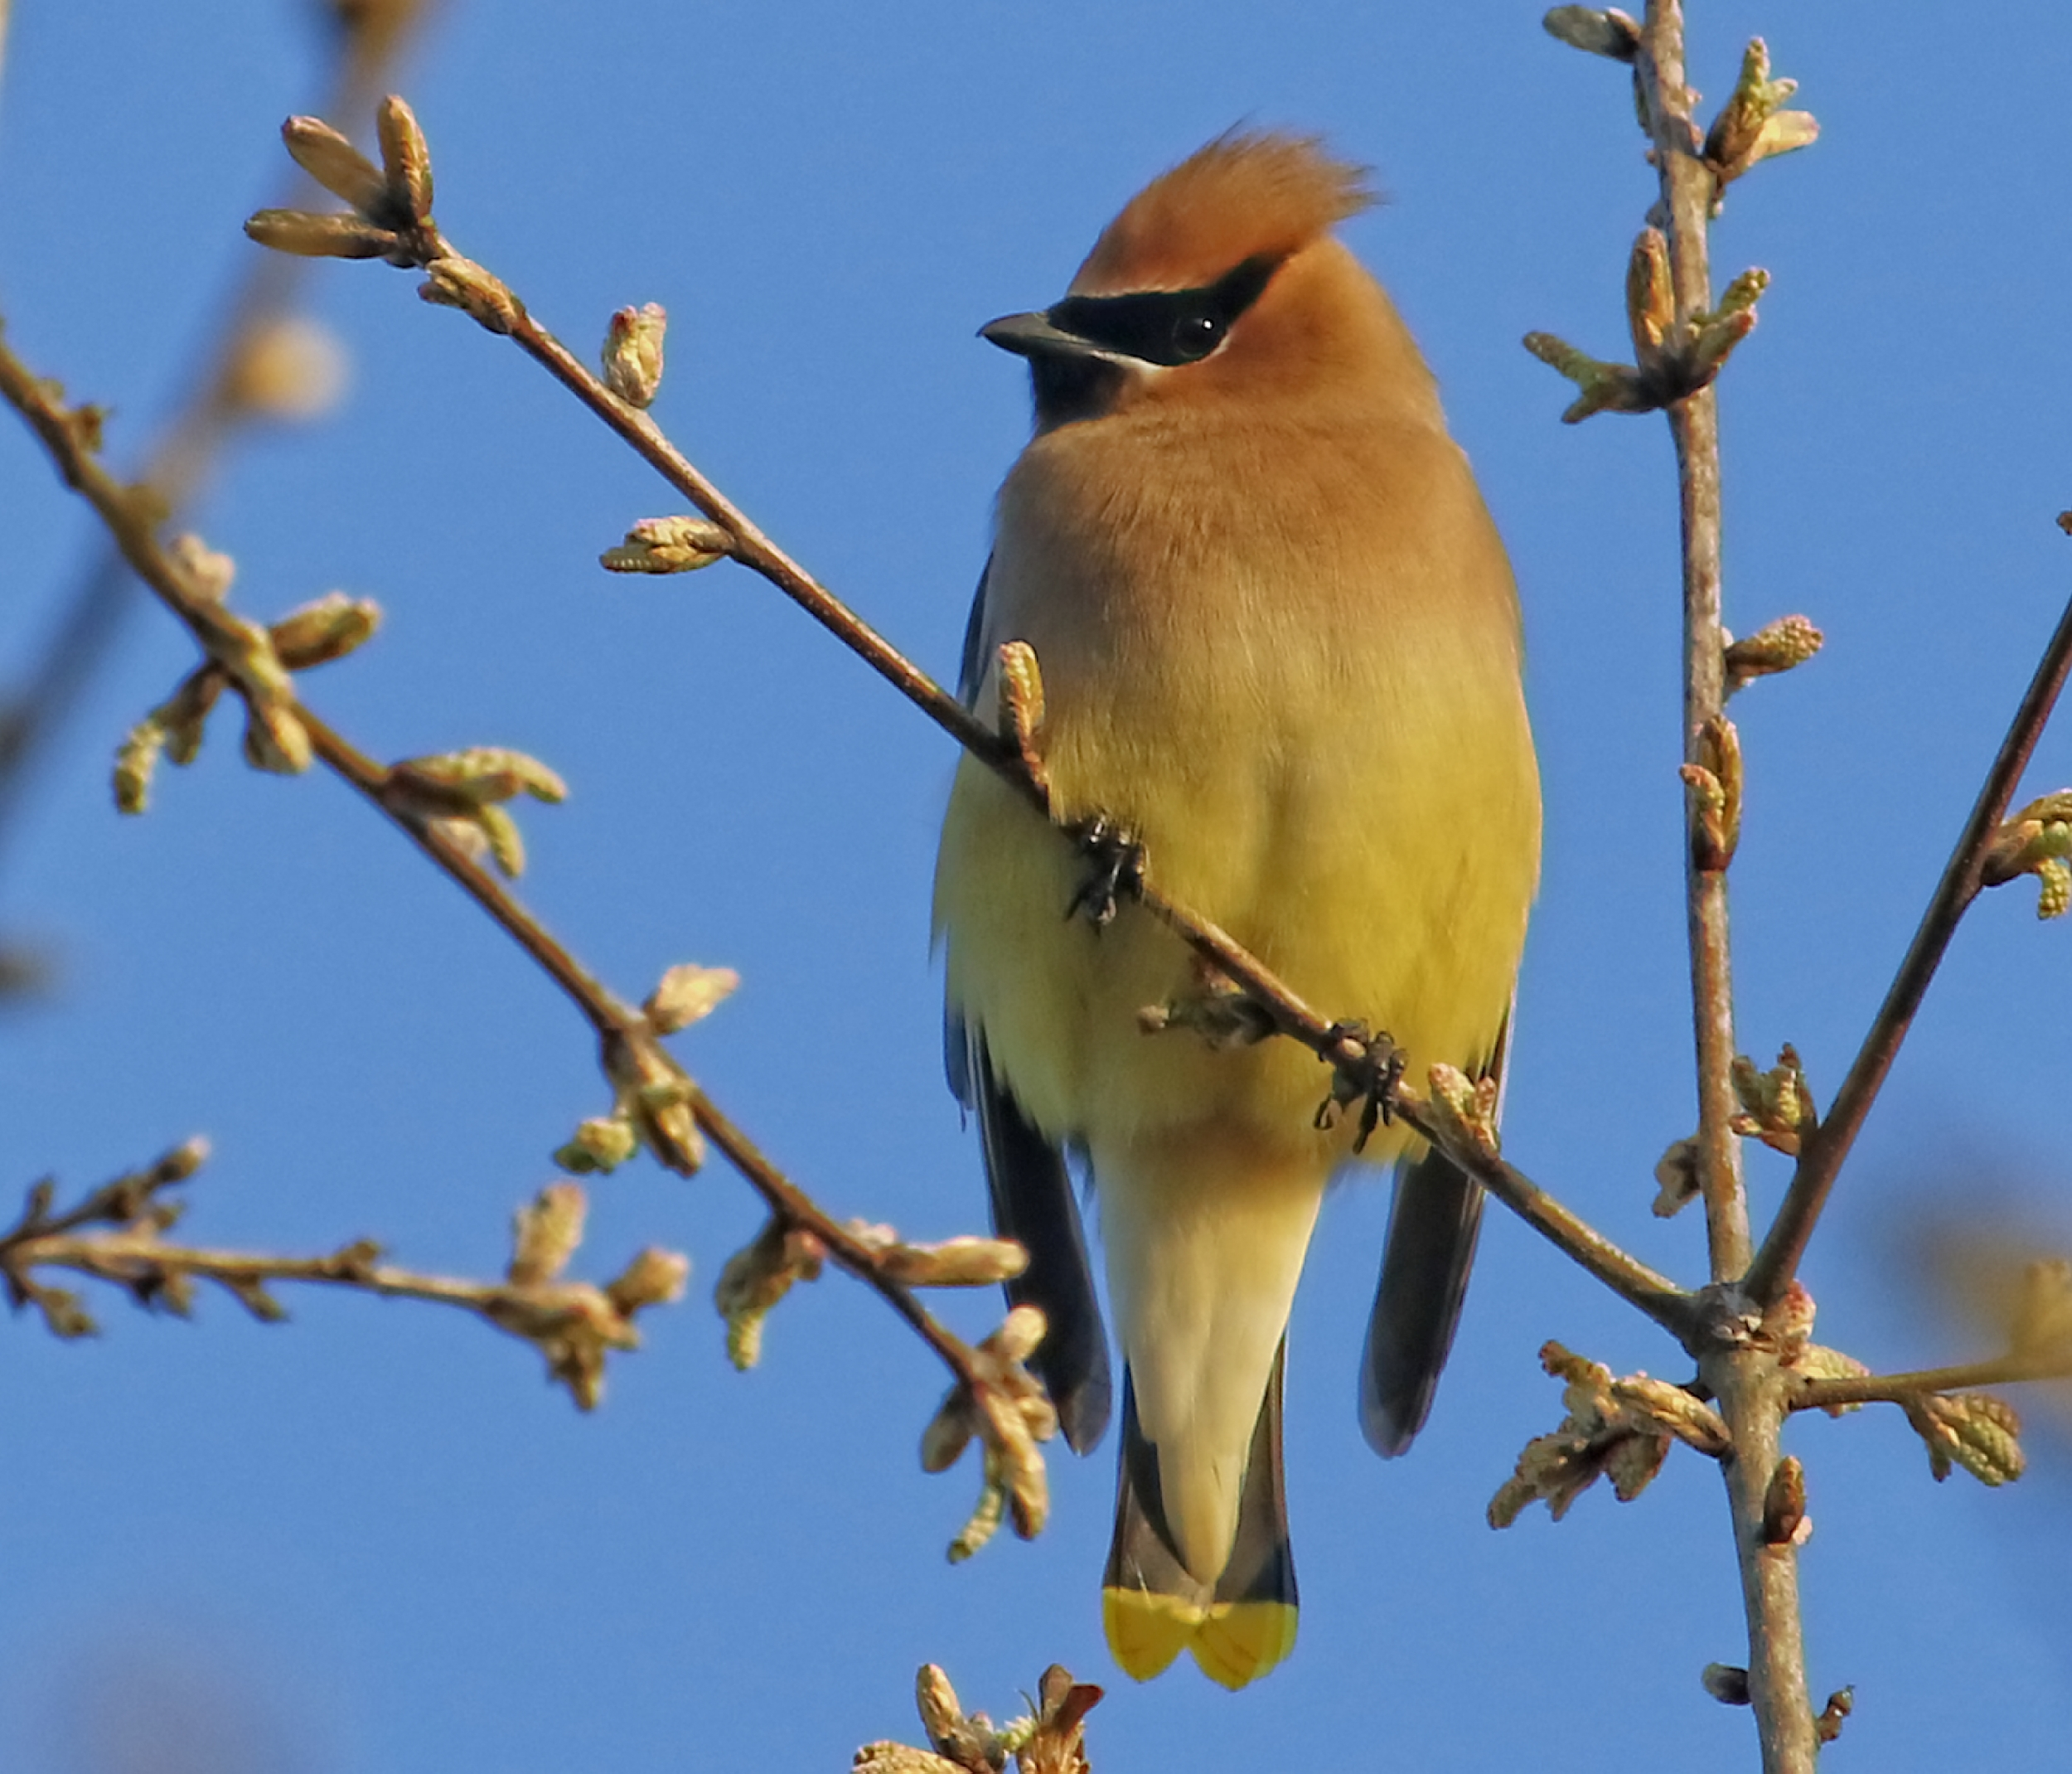 Had a first sighting of a Cedar Waxwing in the Yard this month when a small flock stopped by.